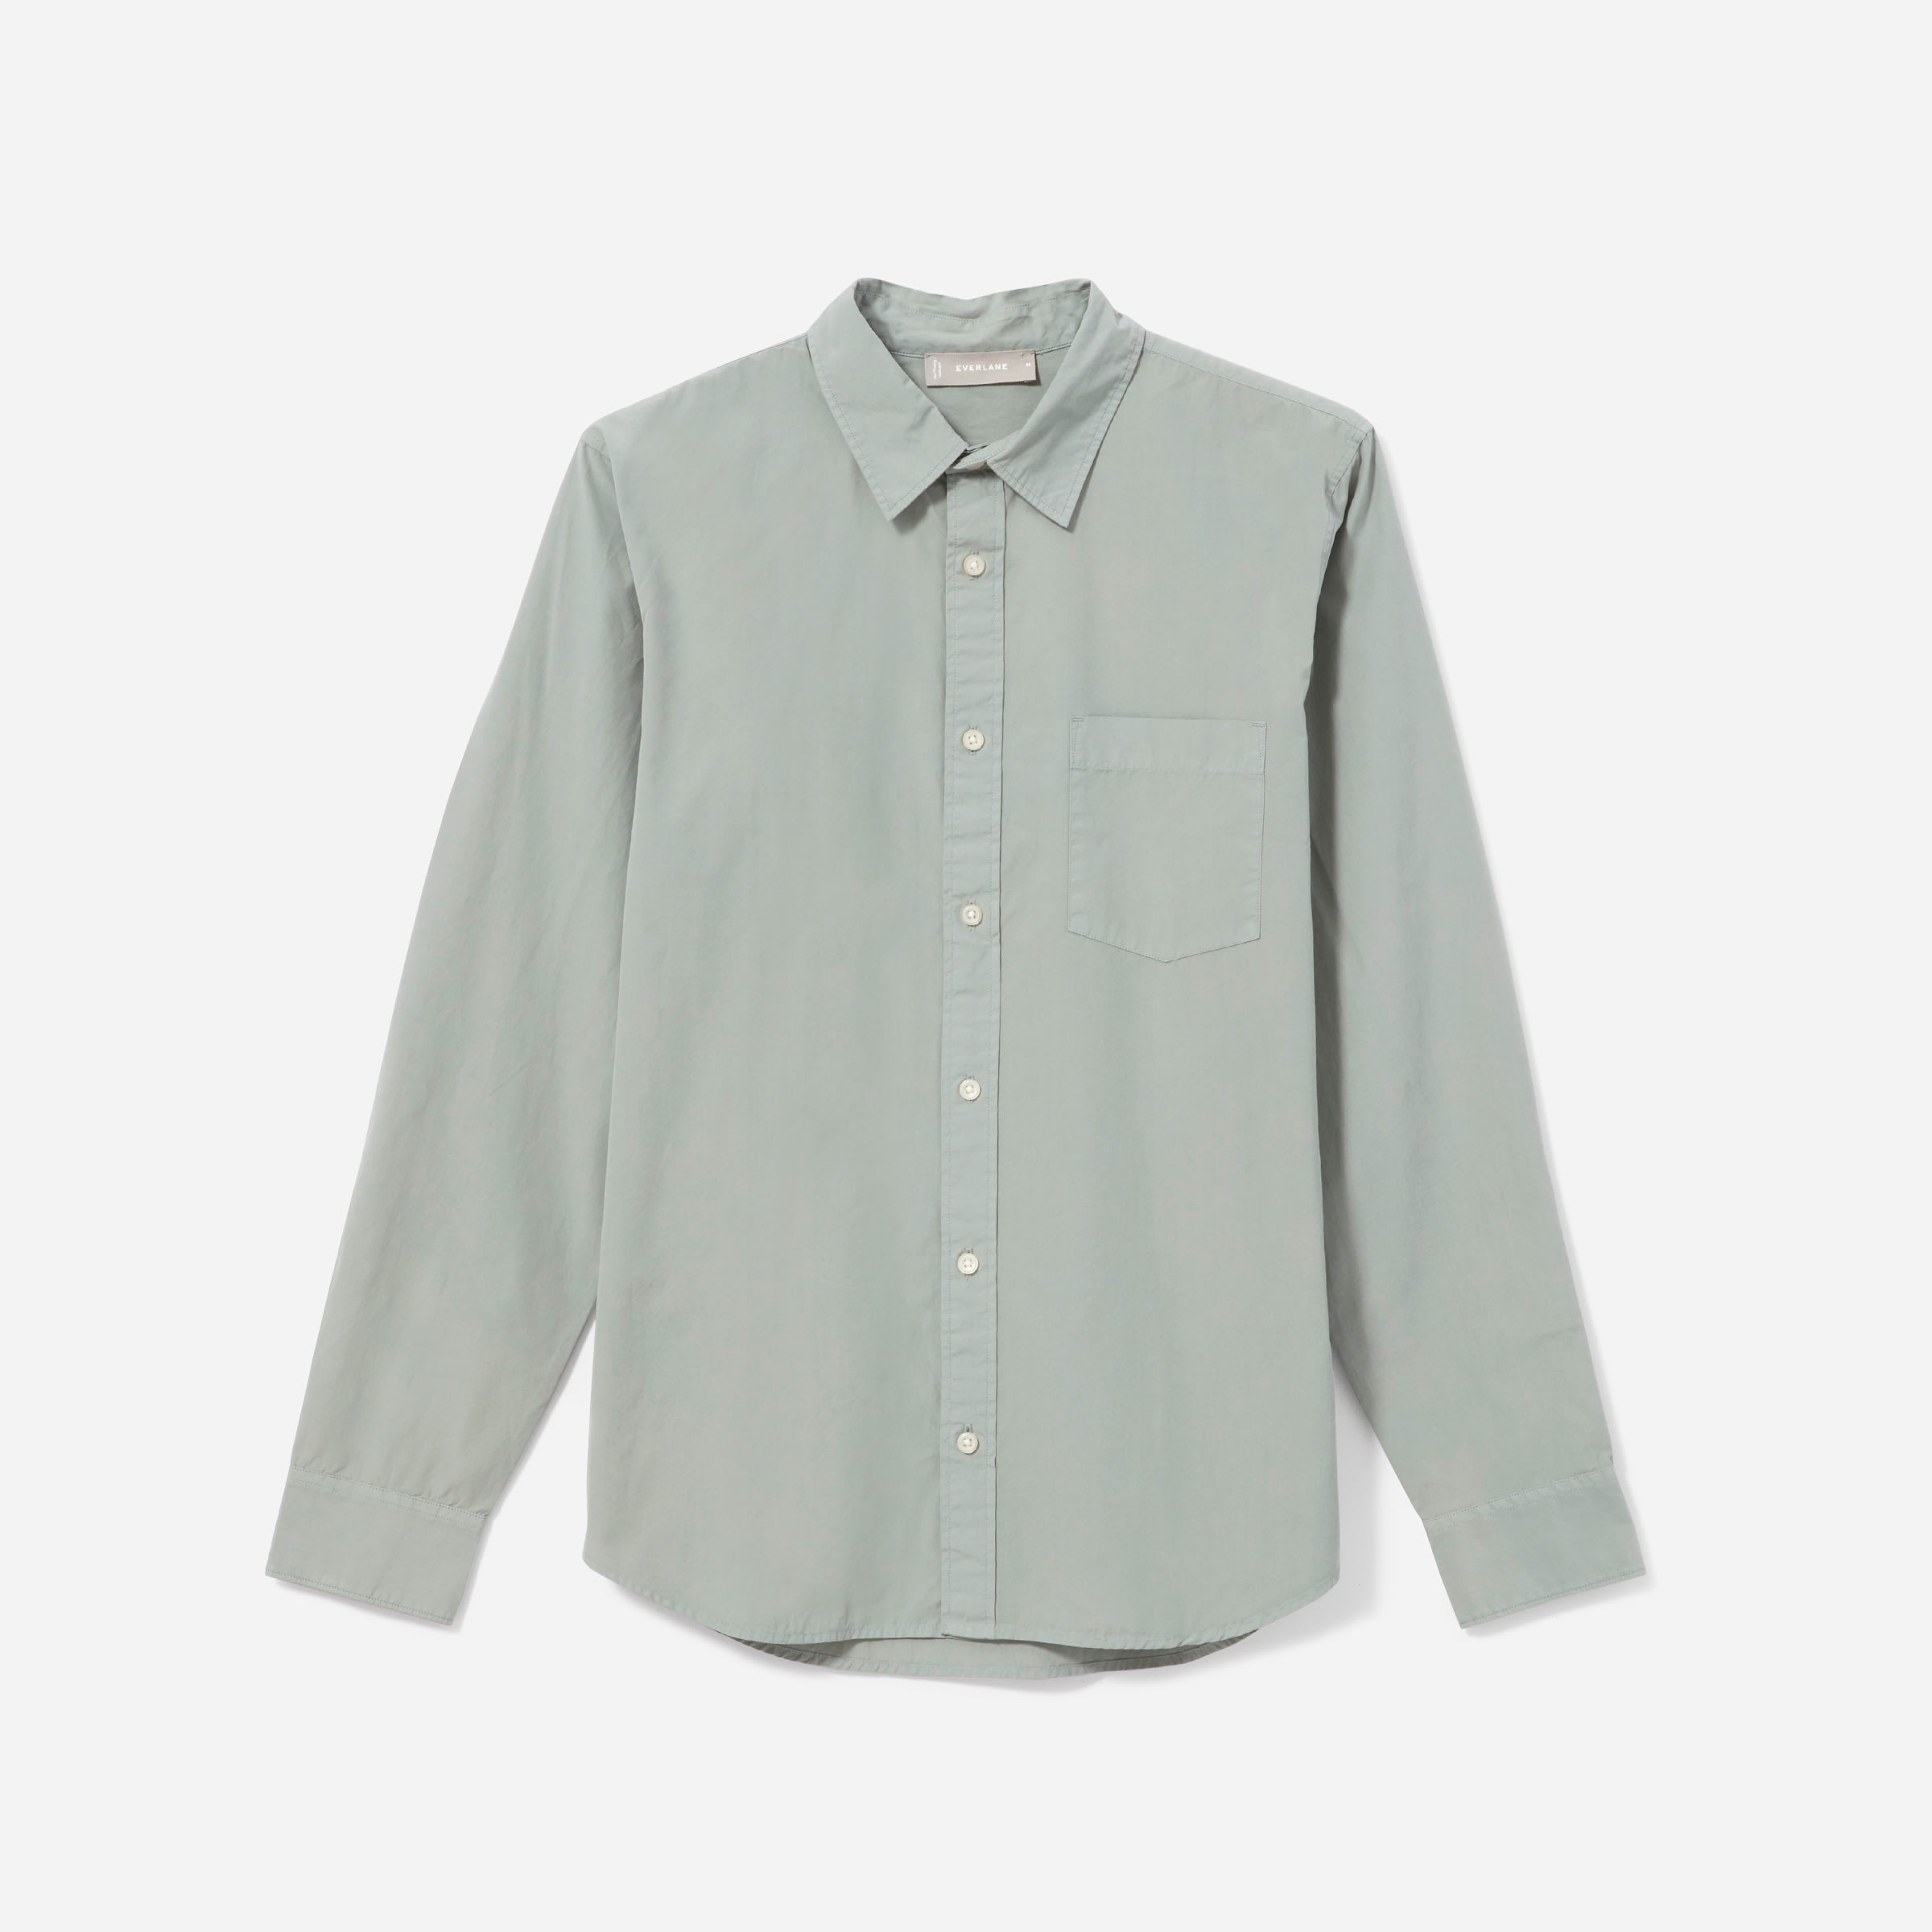 The Garment Dyed Cotton Shirt by Everlane